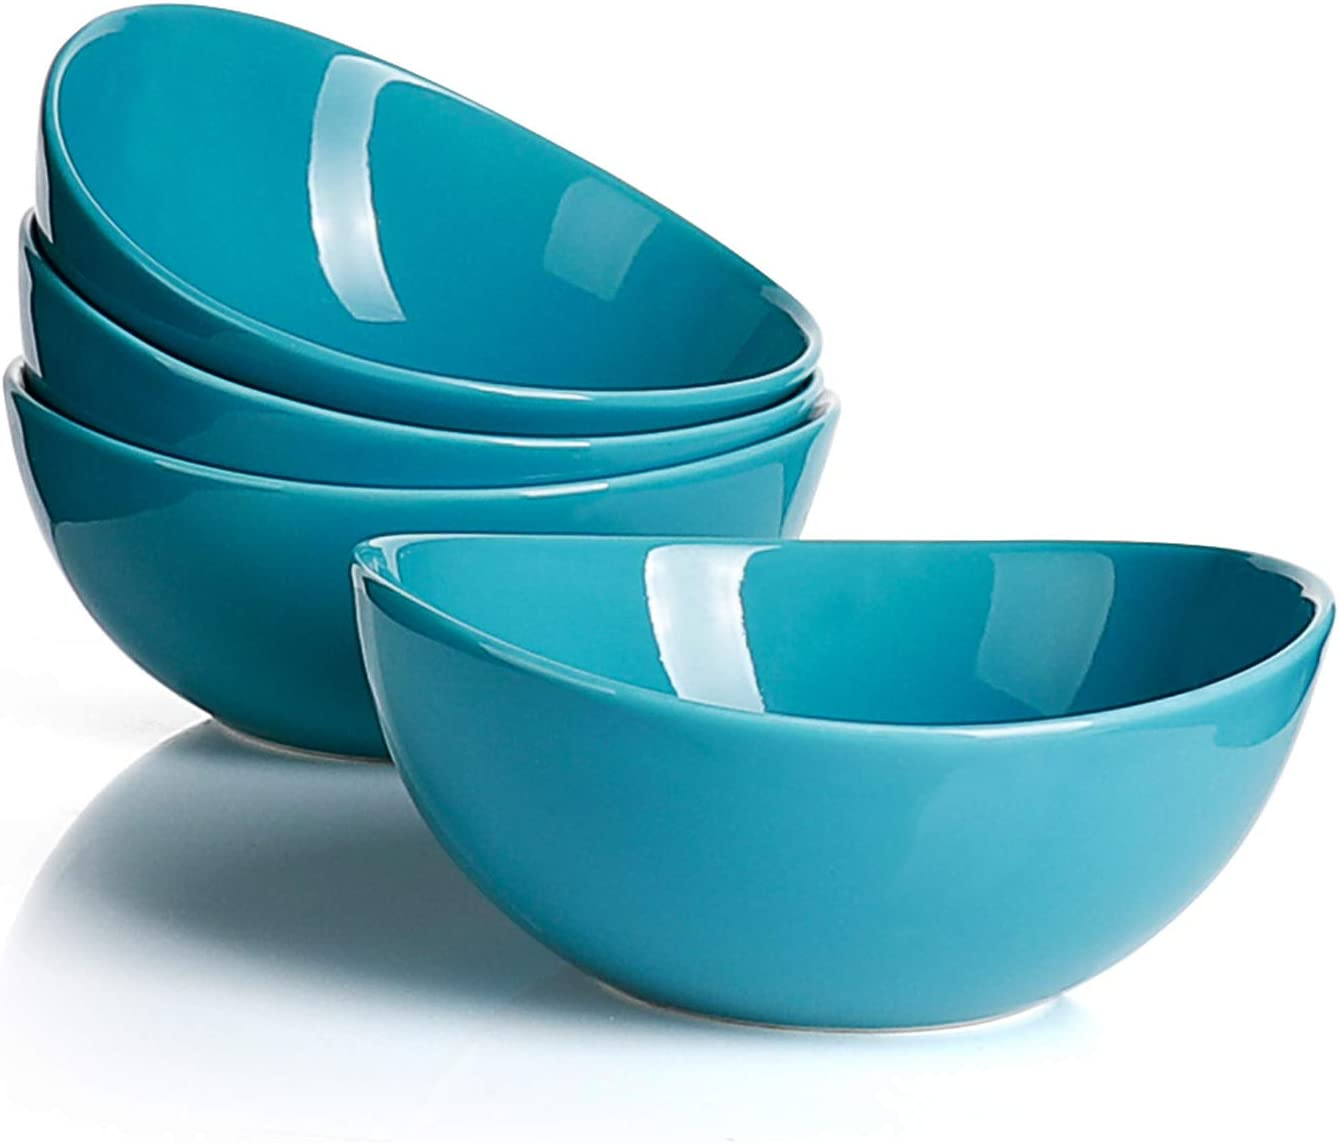 Sweese 103.407 Porcelain Bowls - 28 Ounce for Cereal, Salad and Desserts - Set of 4, Steel Blue